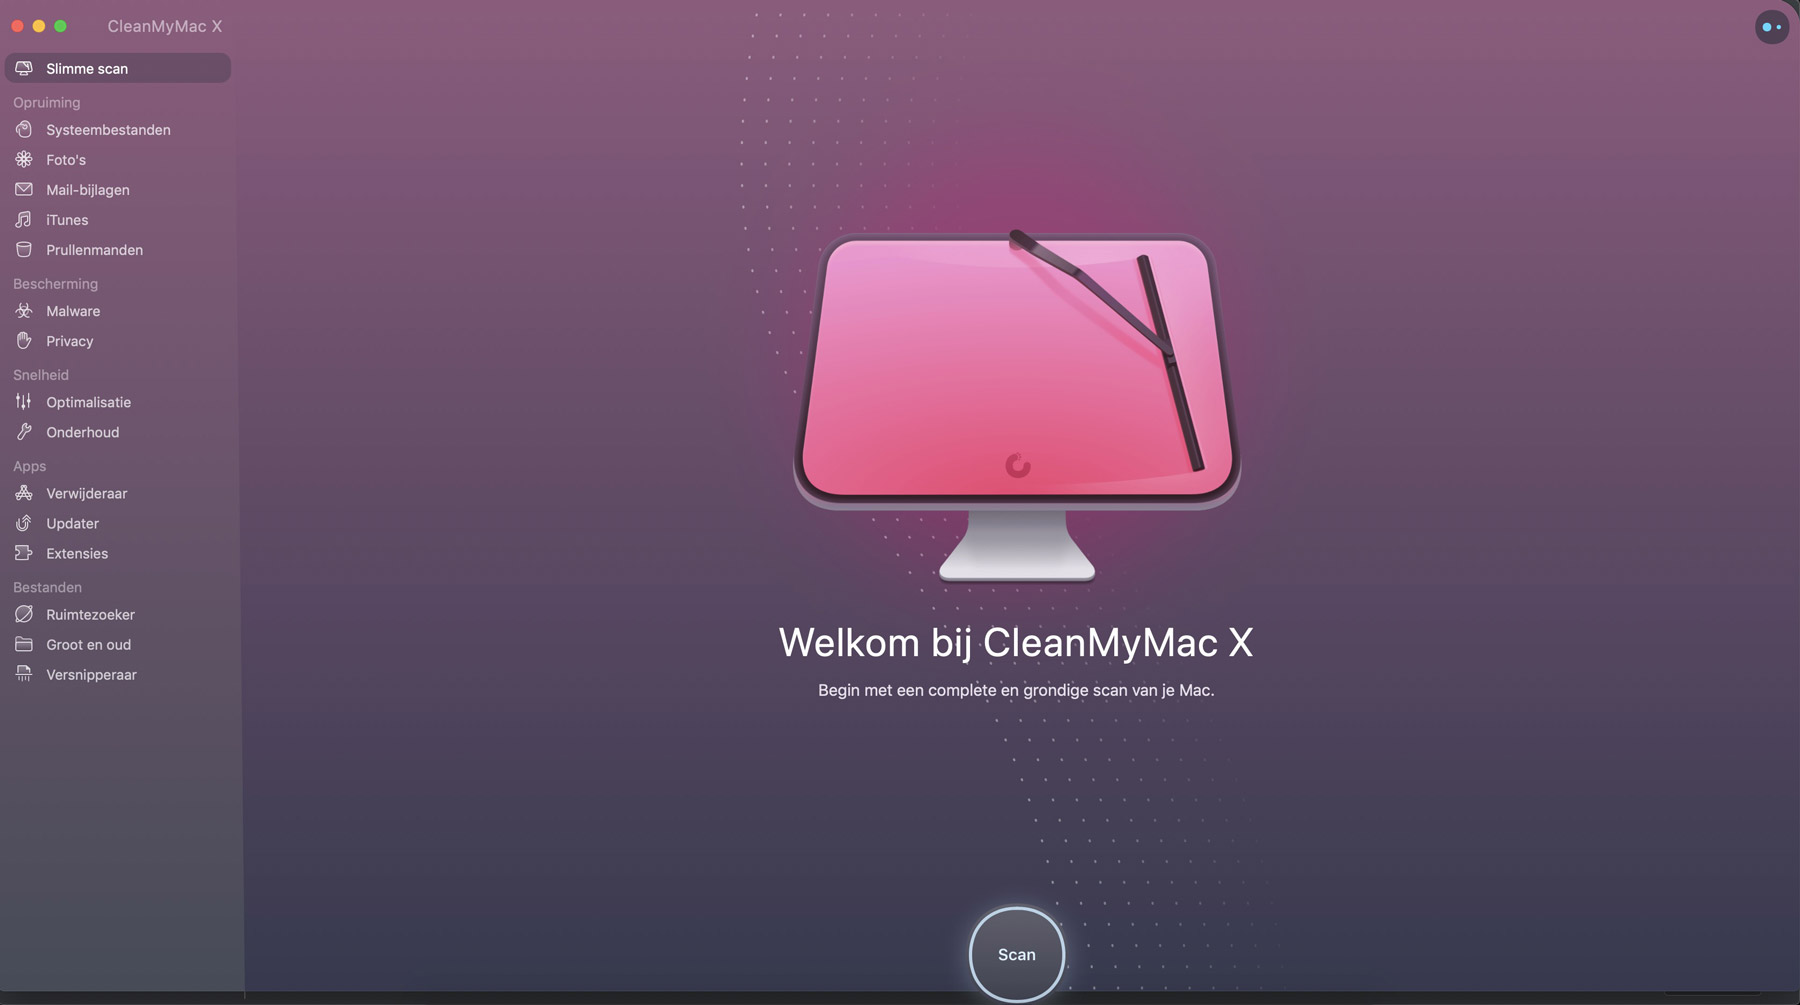 CleanMyMac interface